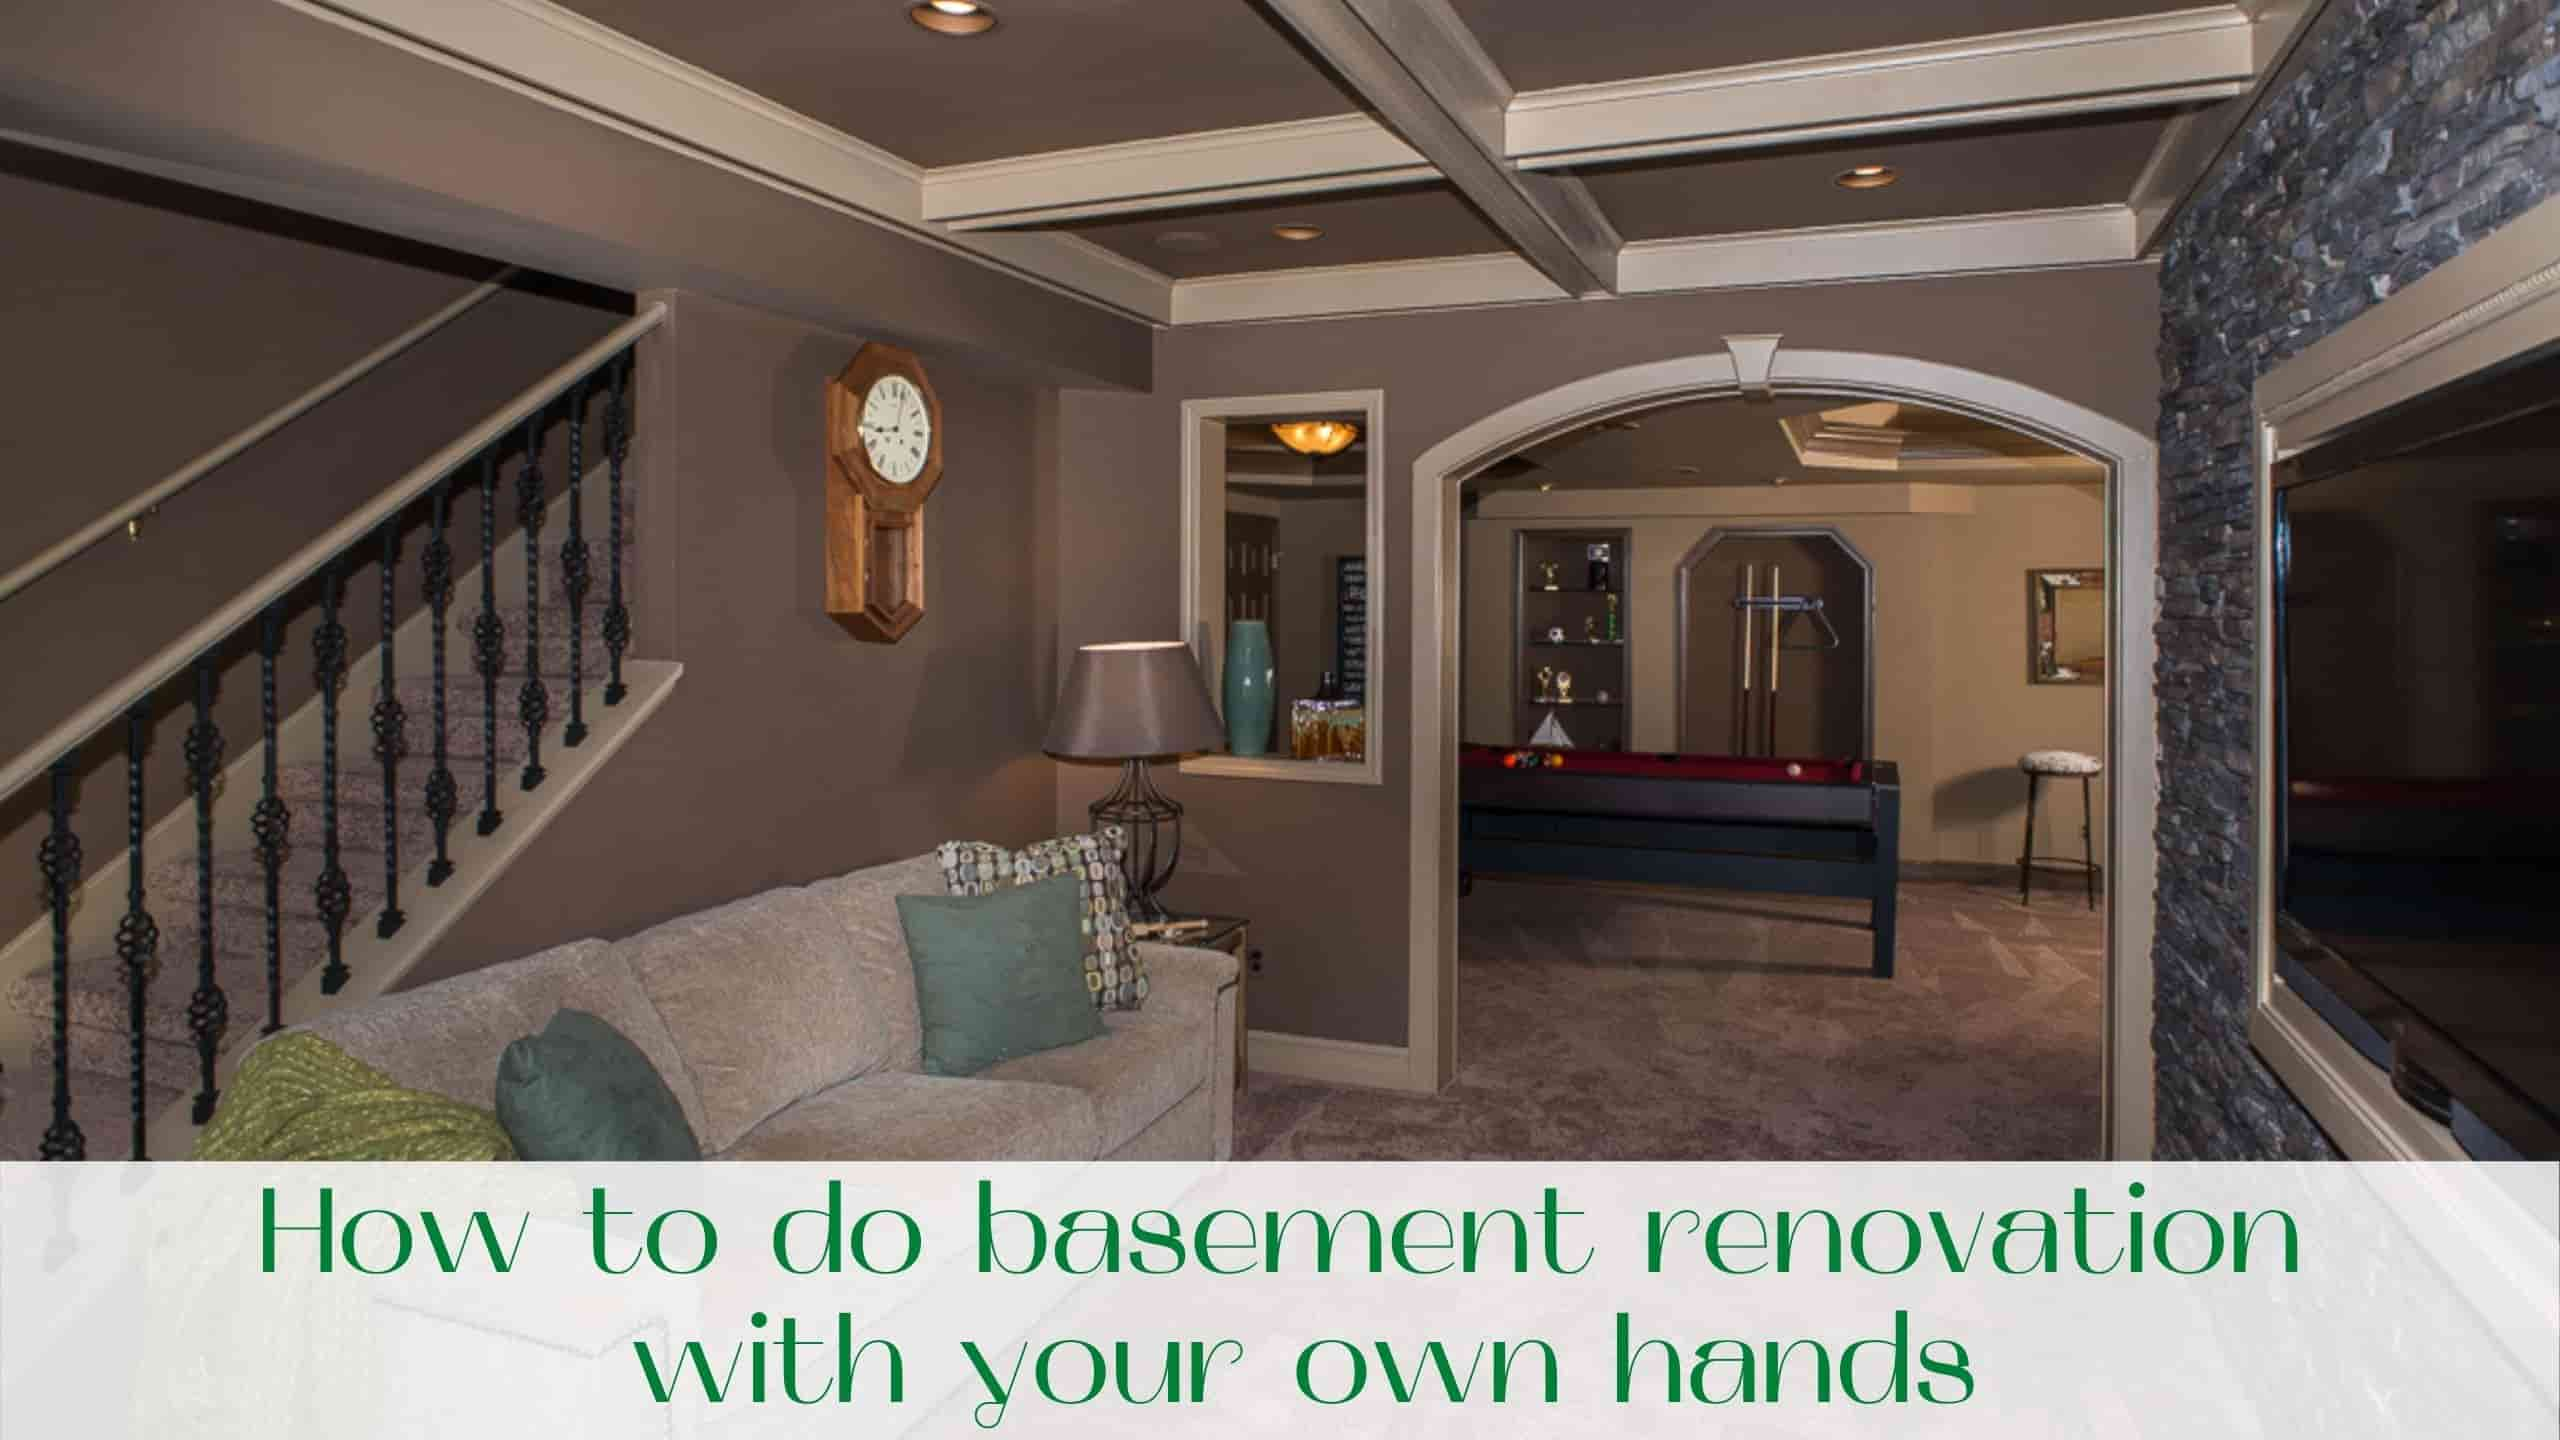 image-How-to-do-basement-renovation-with-your-own-hands